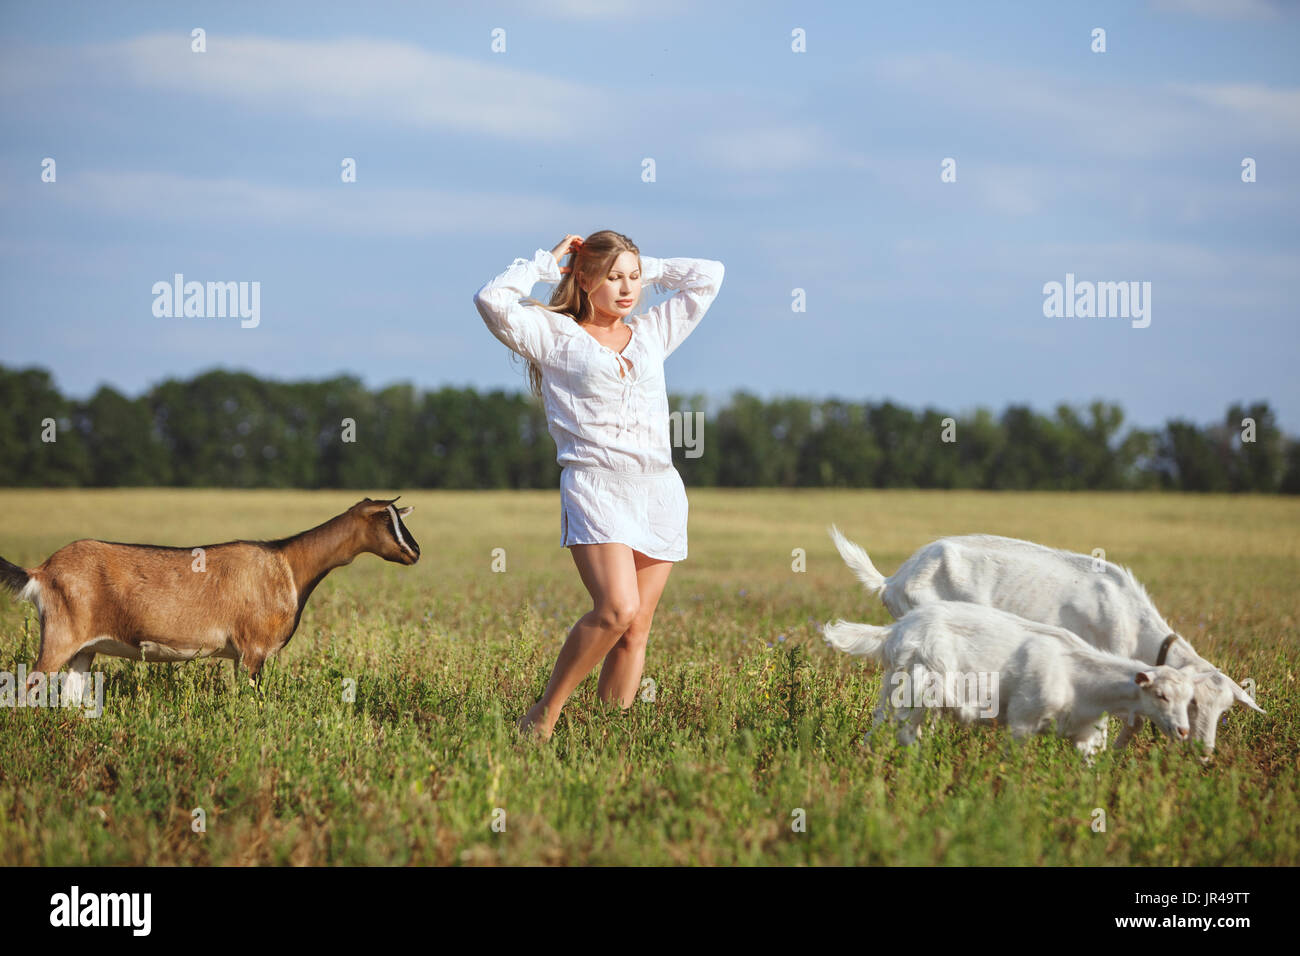 Woman is standing in a field, next to graze domestic goats. - Stock Image